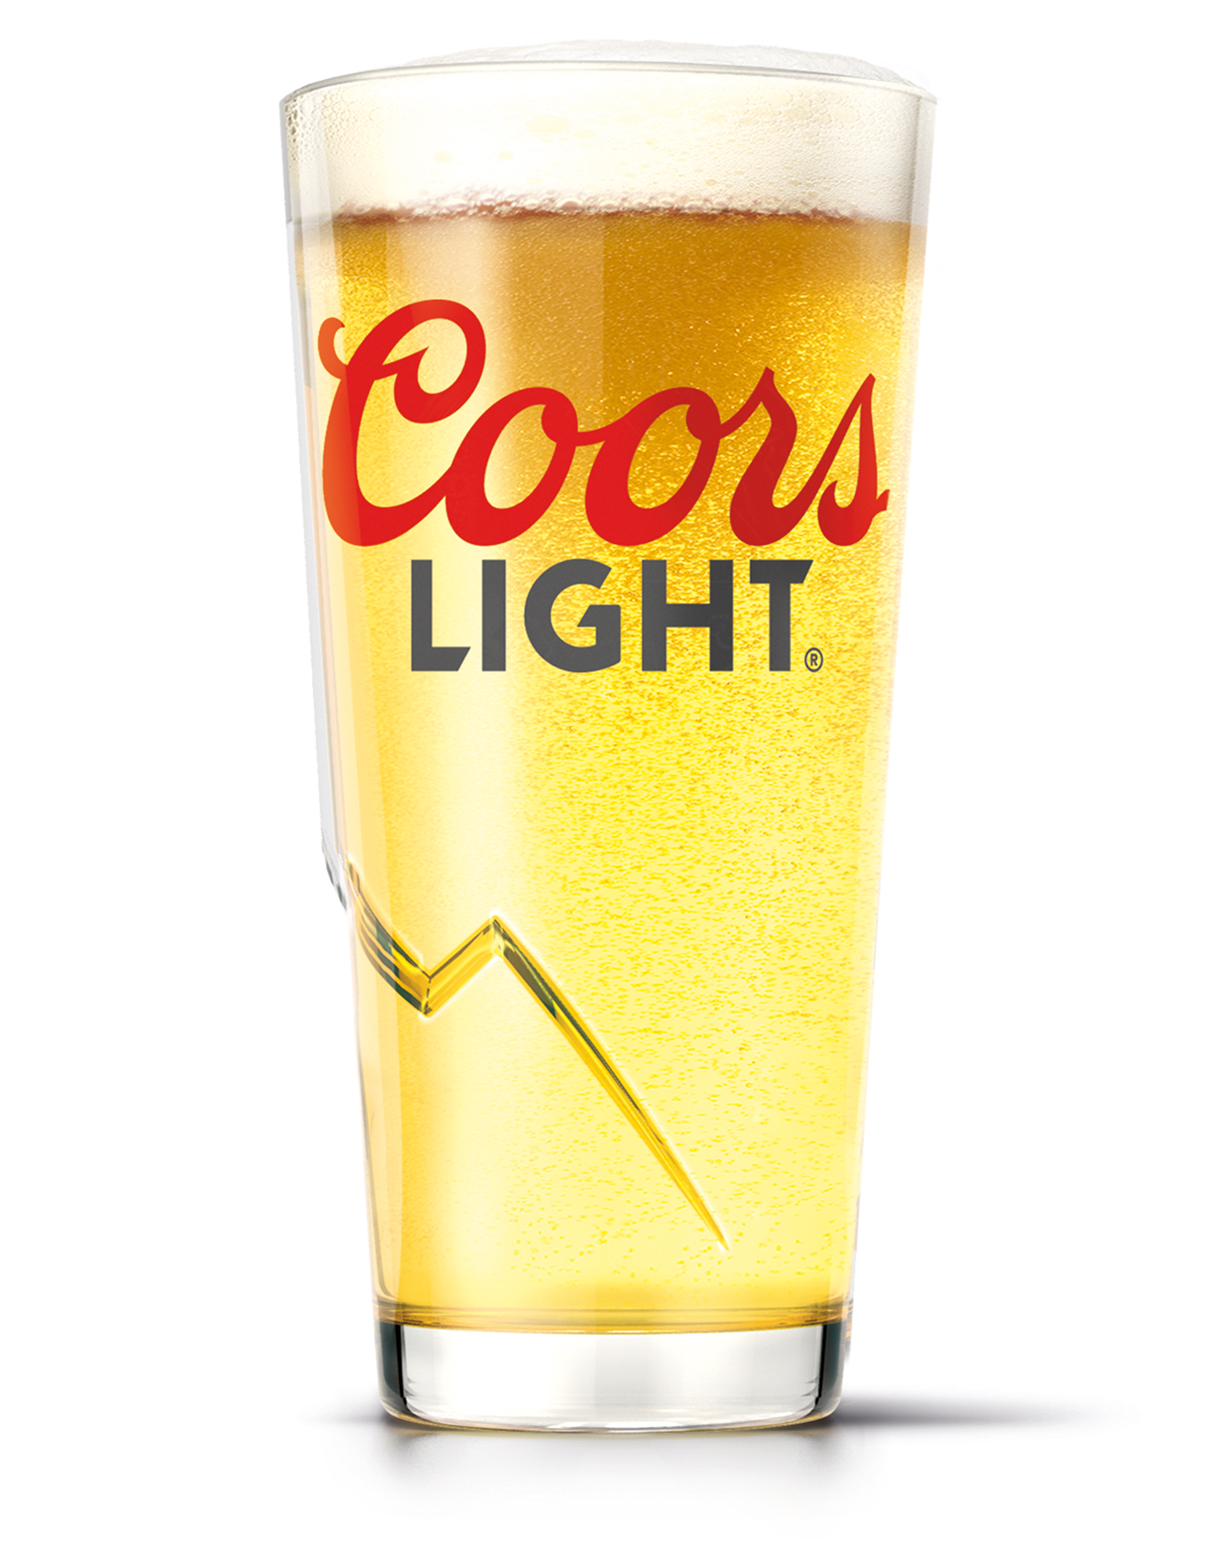 Coors-Light-Glass-preview.jpg